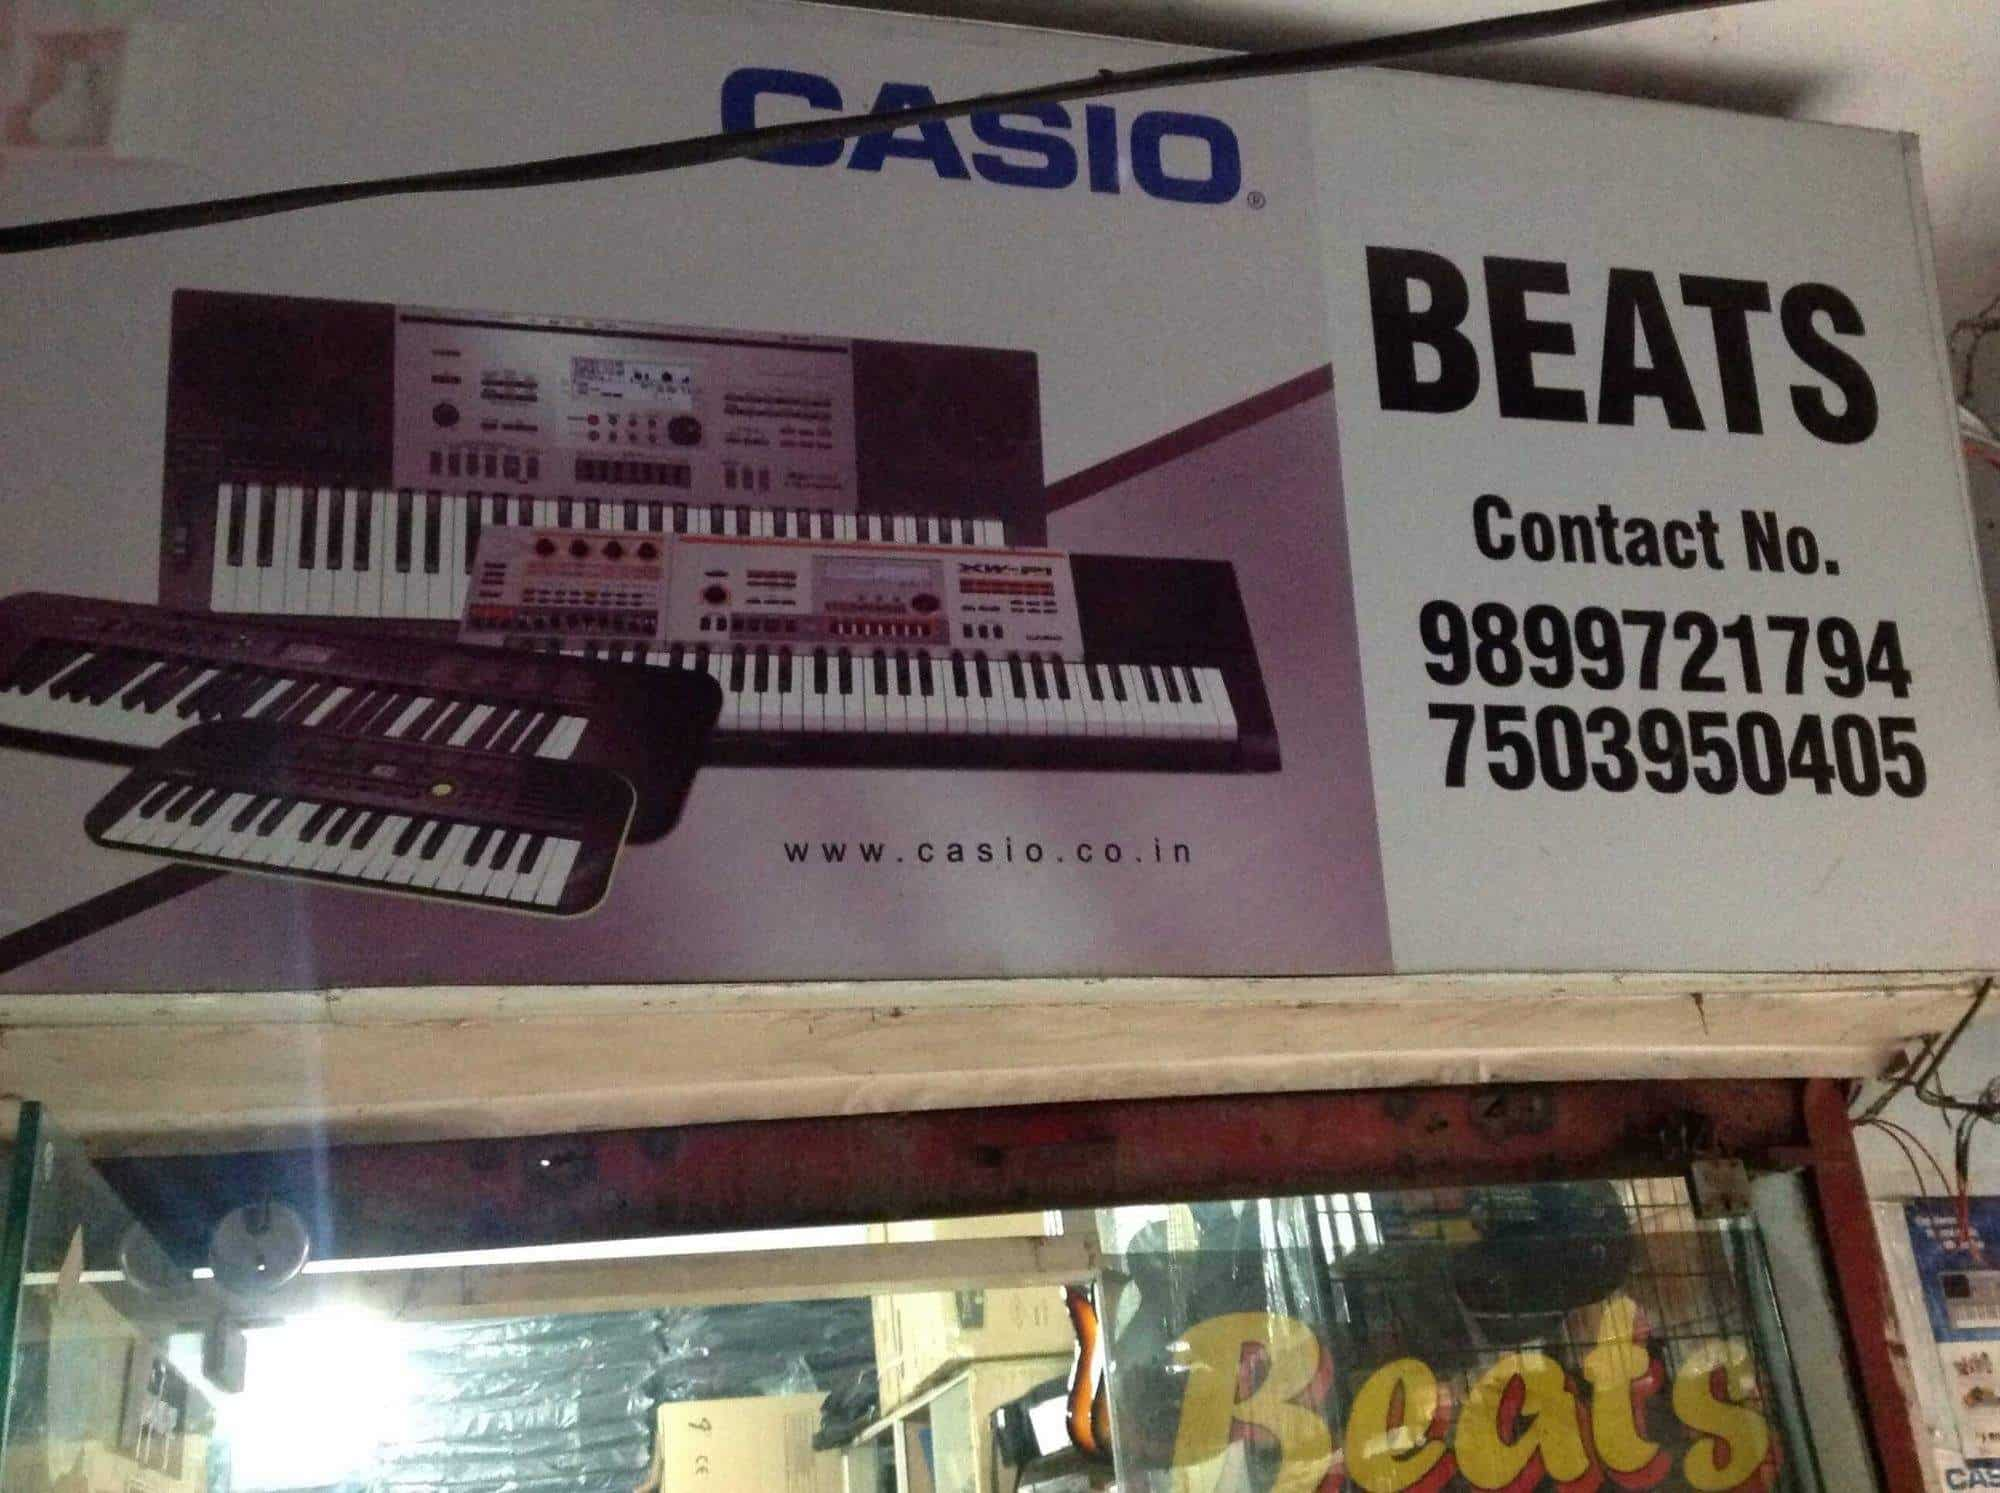 Beats The Musical Instrument Store, Vaishali Sector 4